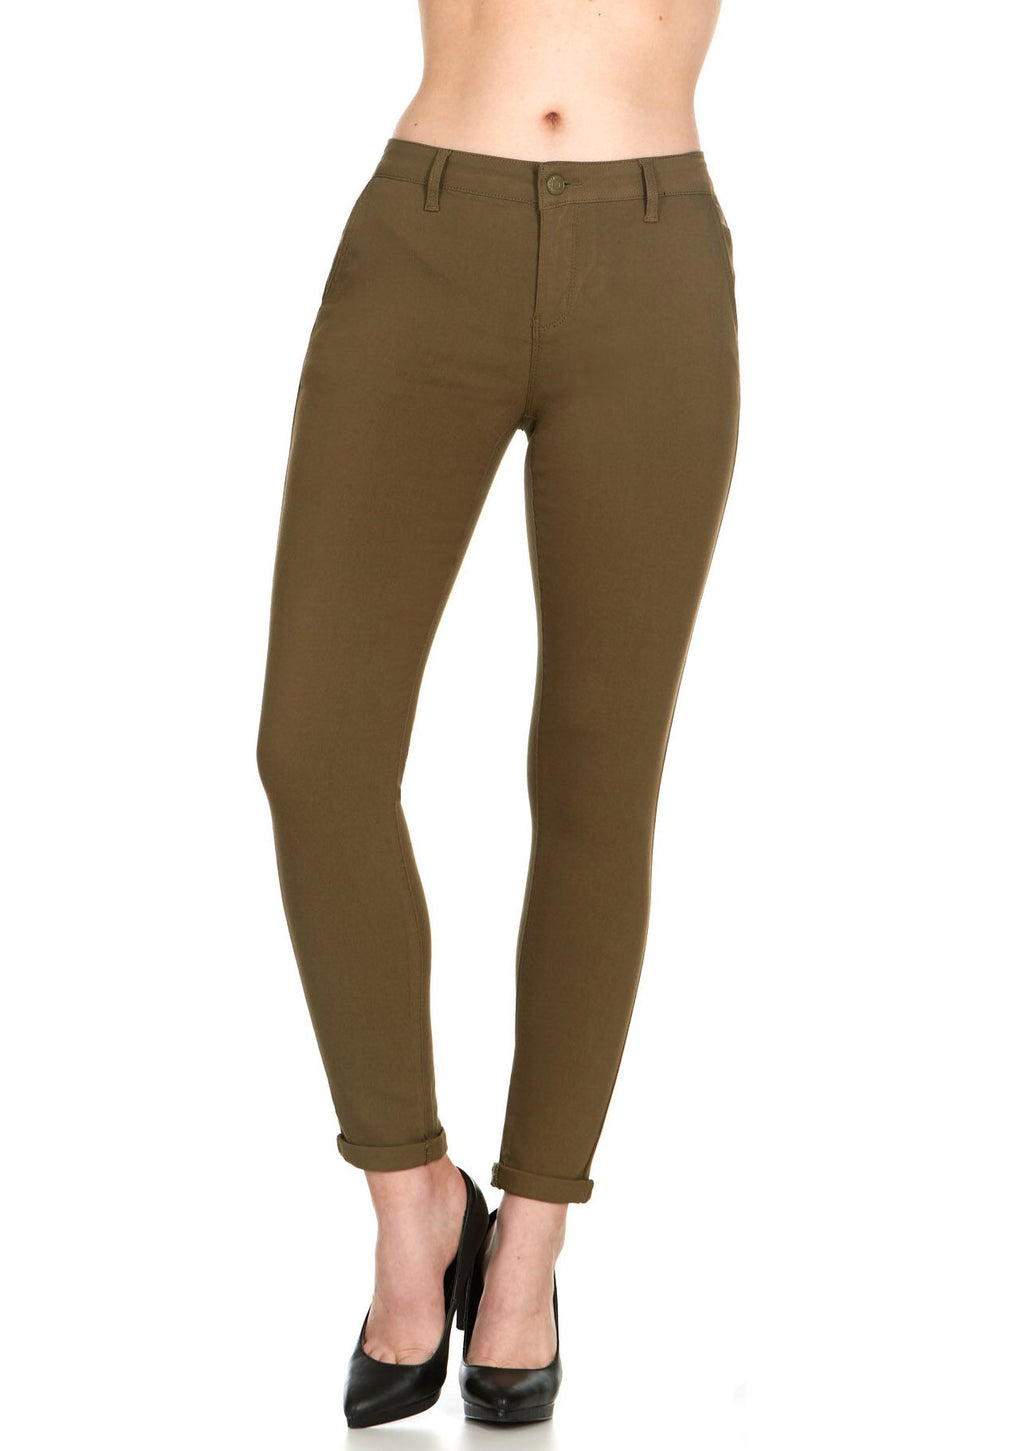 ELITE JEANS Mid Rise Active Stretch Skinny Jeans Women | Olive (P19006-06)